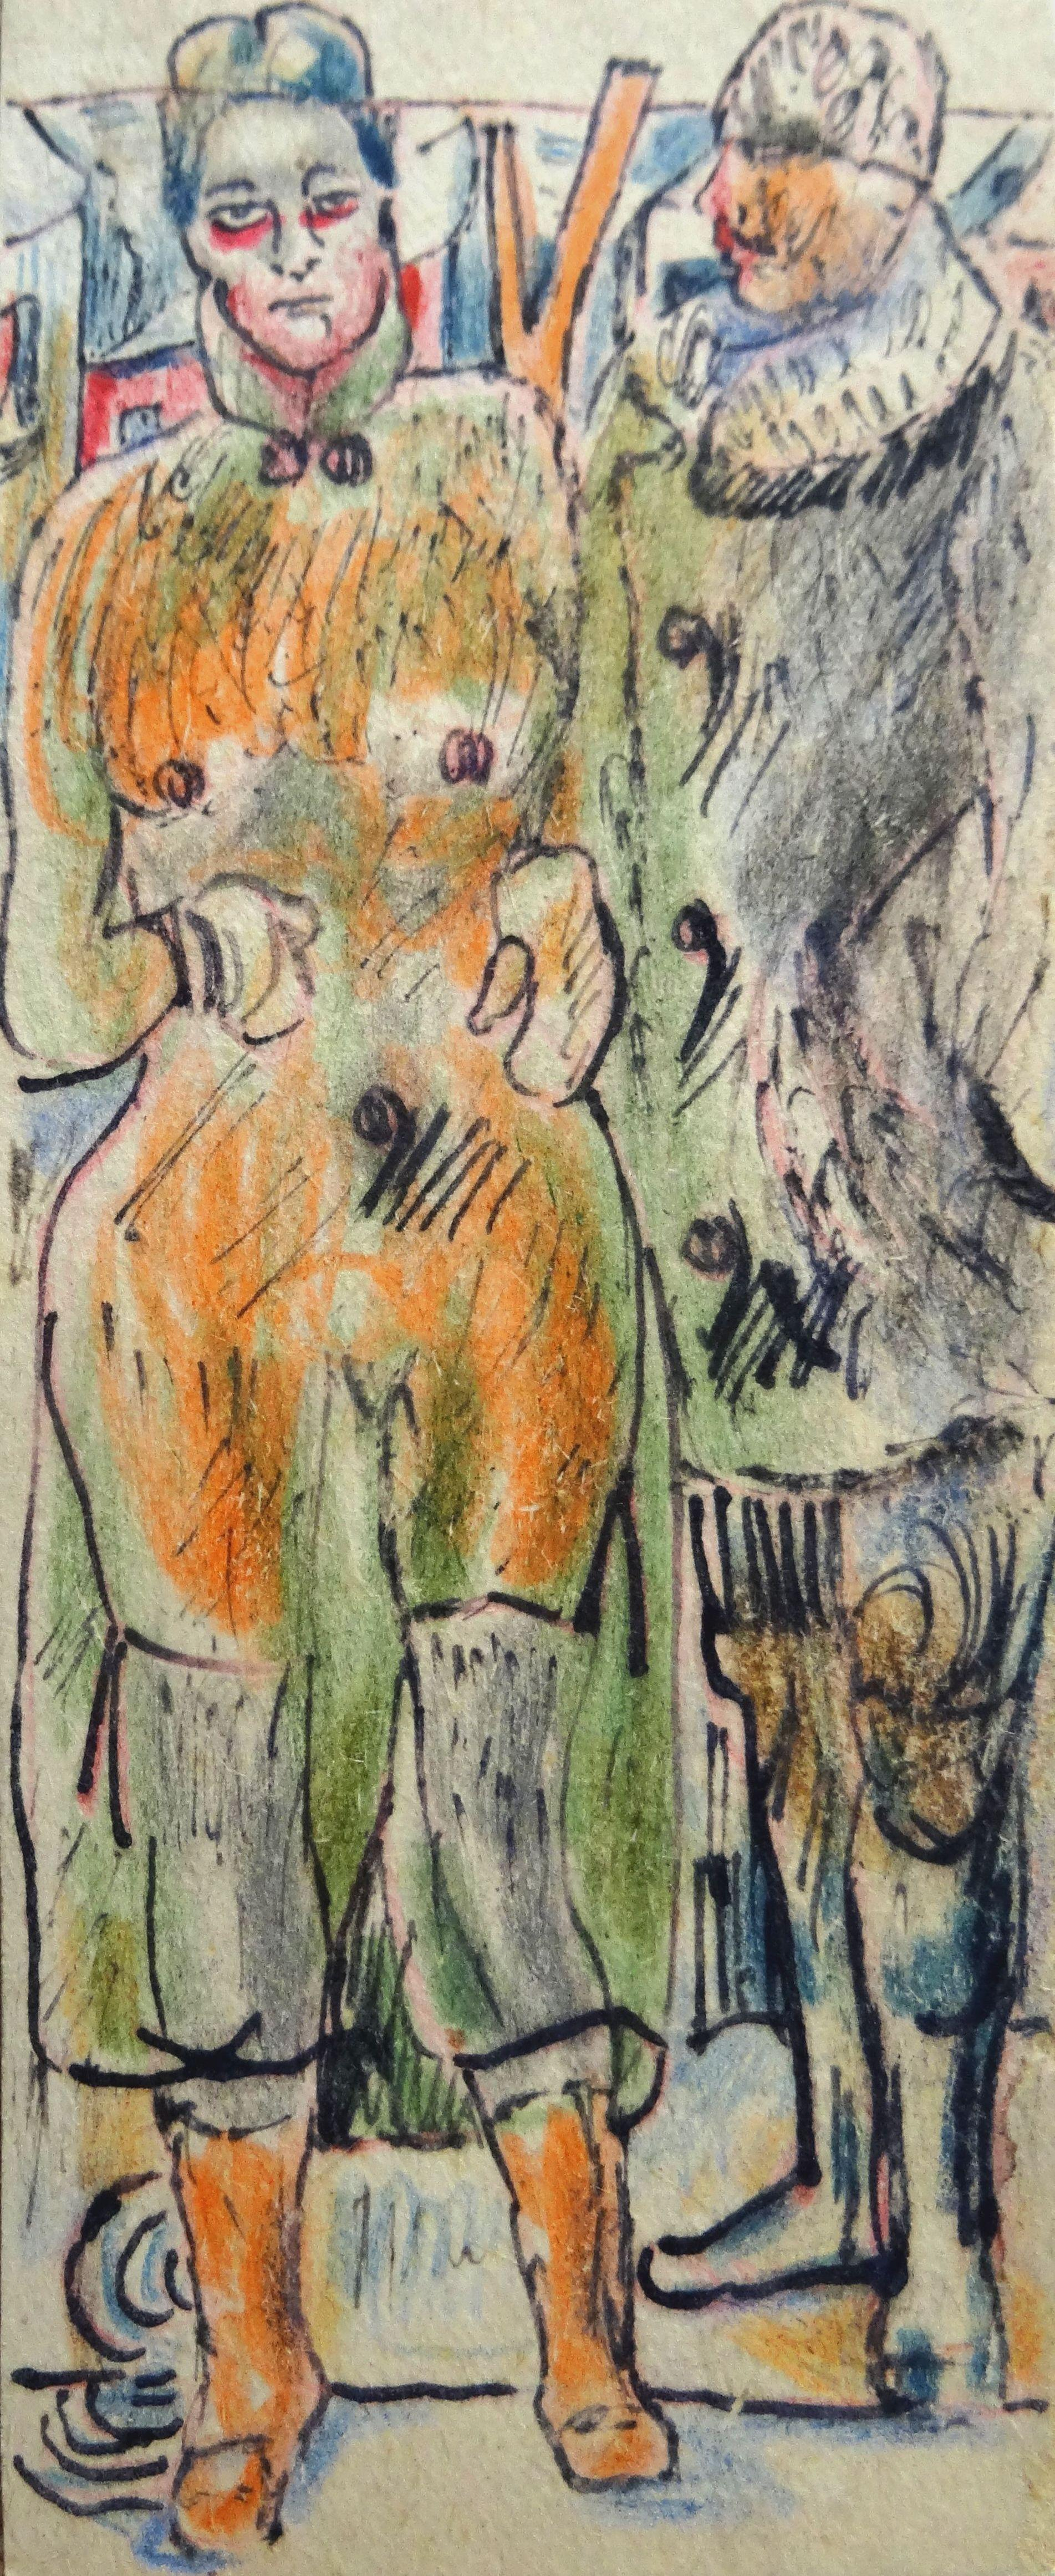 Mr Millerson with Mrs. 1959. Paper, mixed media, 16x6.5 cm